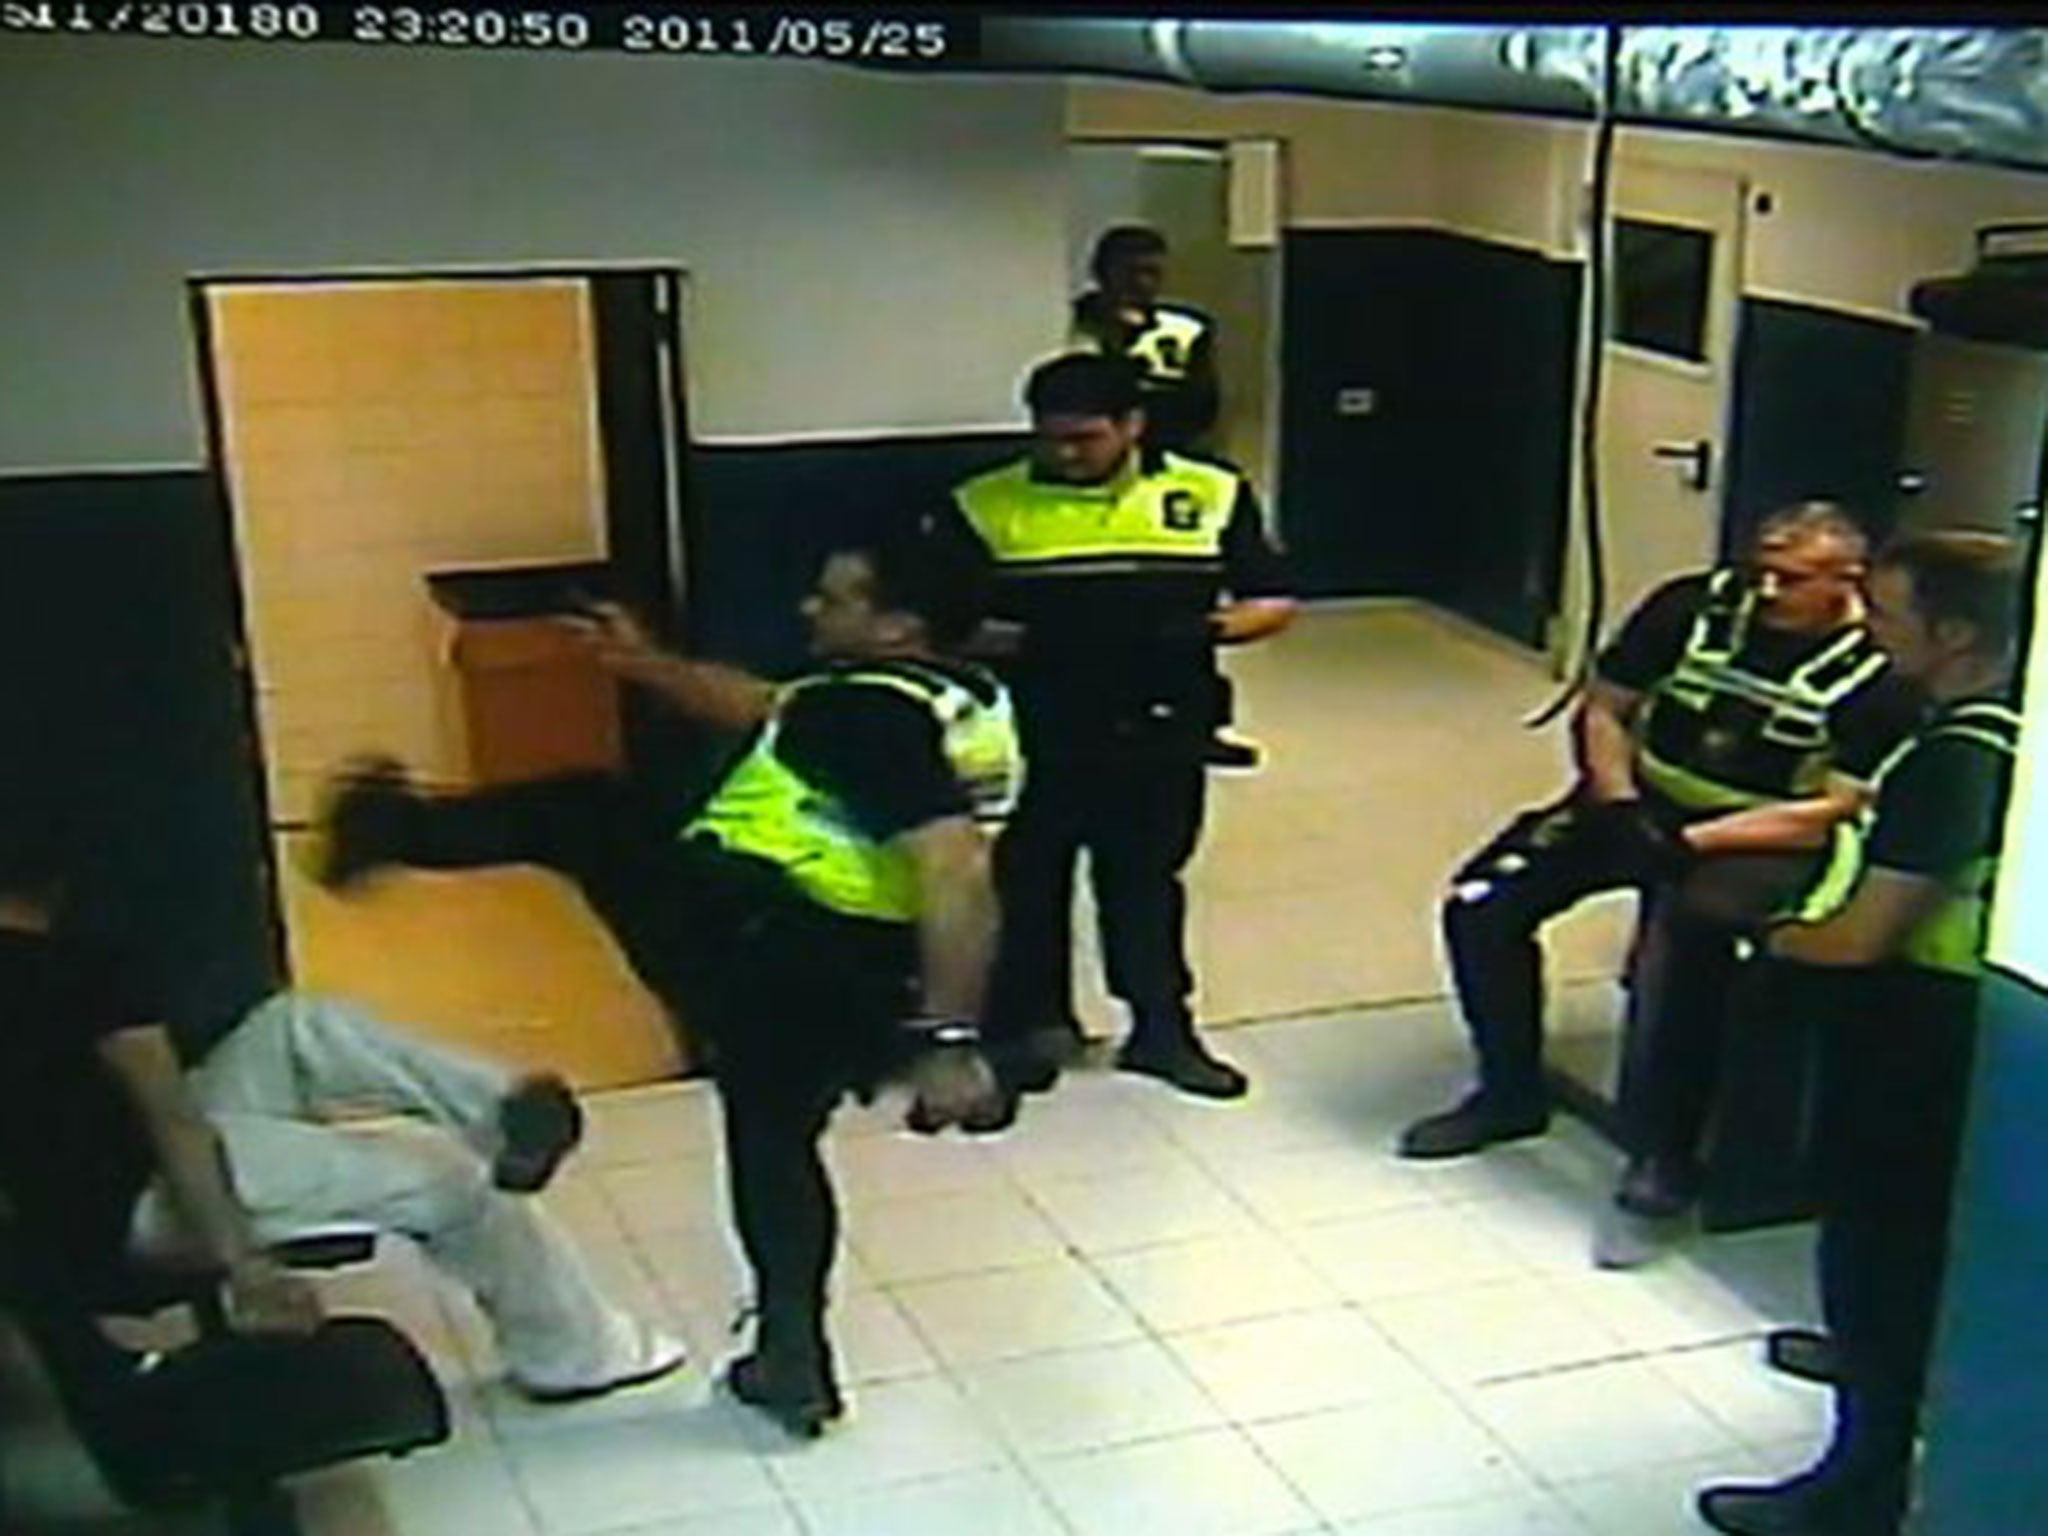 Spanish policeman filmed 'karate kicking' handcuffed suspect twice in newly released video